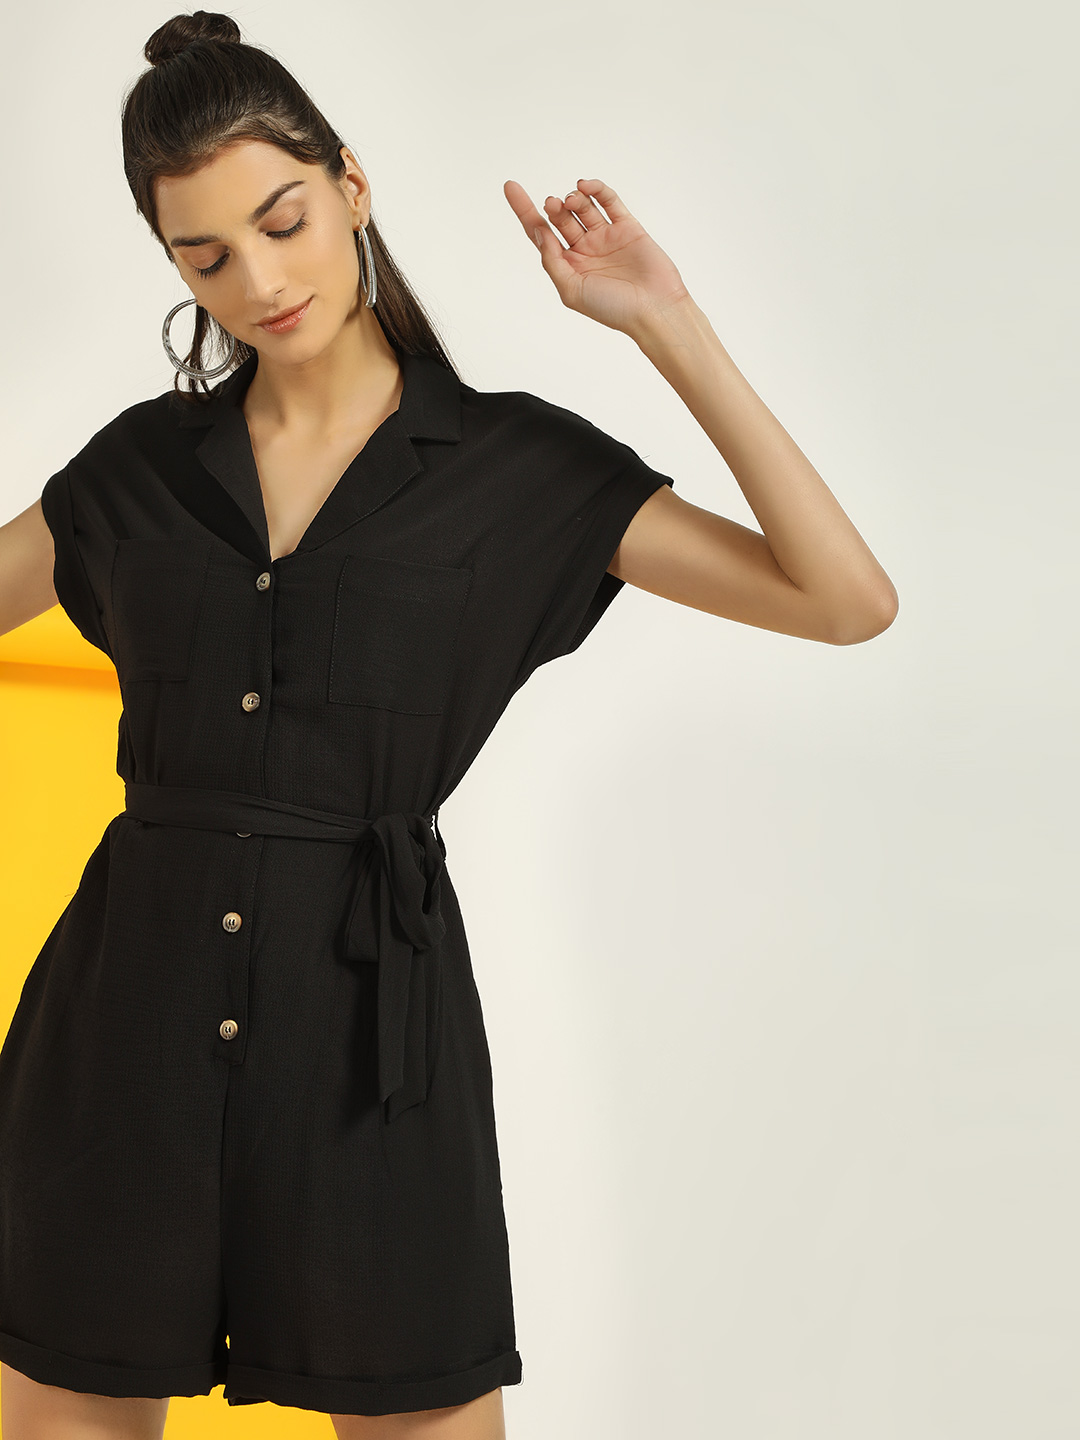 New Look Black Revere Collar Button-Up Playsuit 1